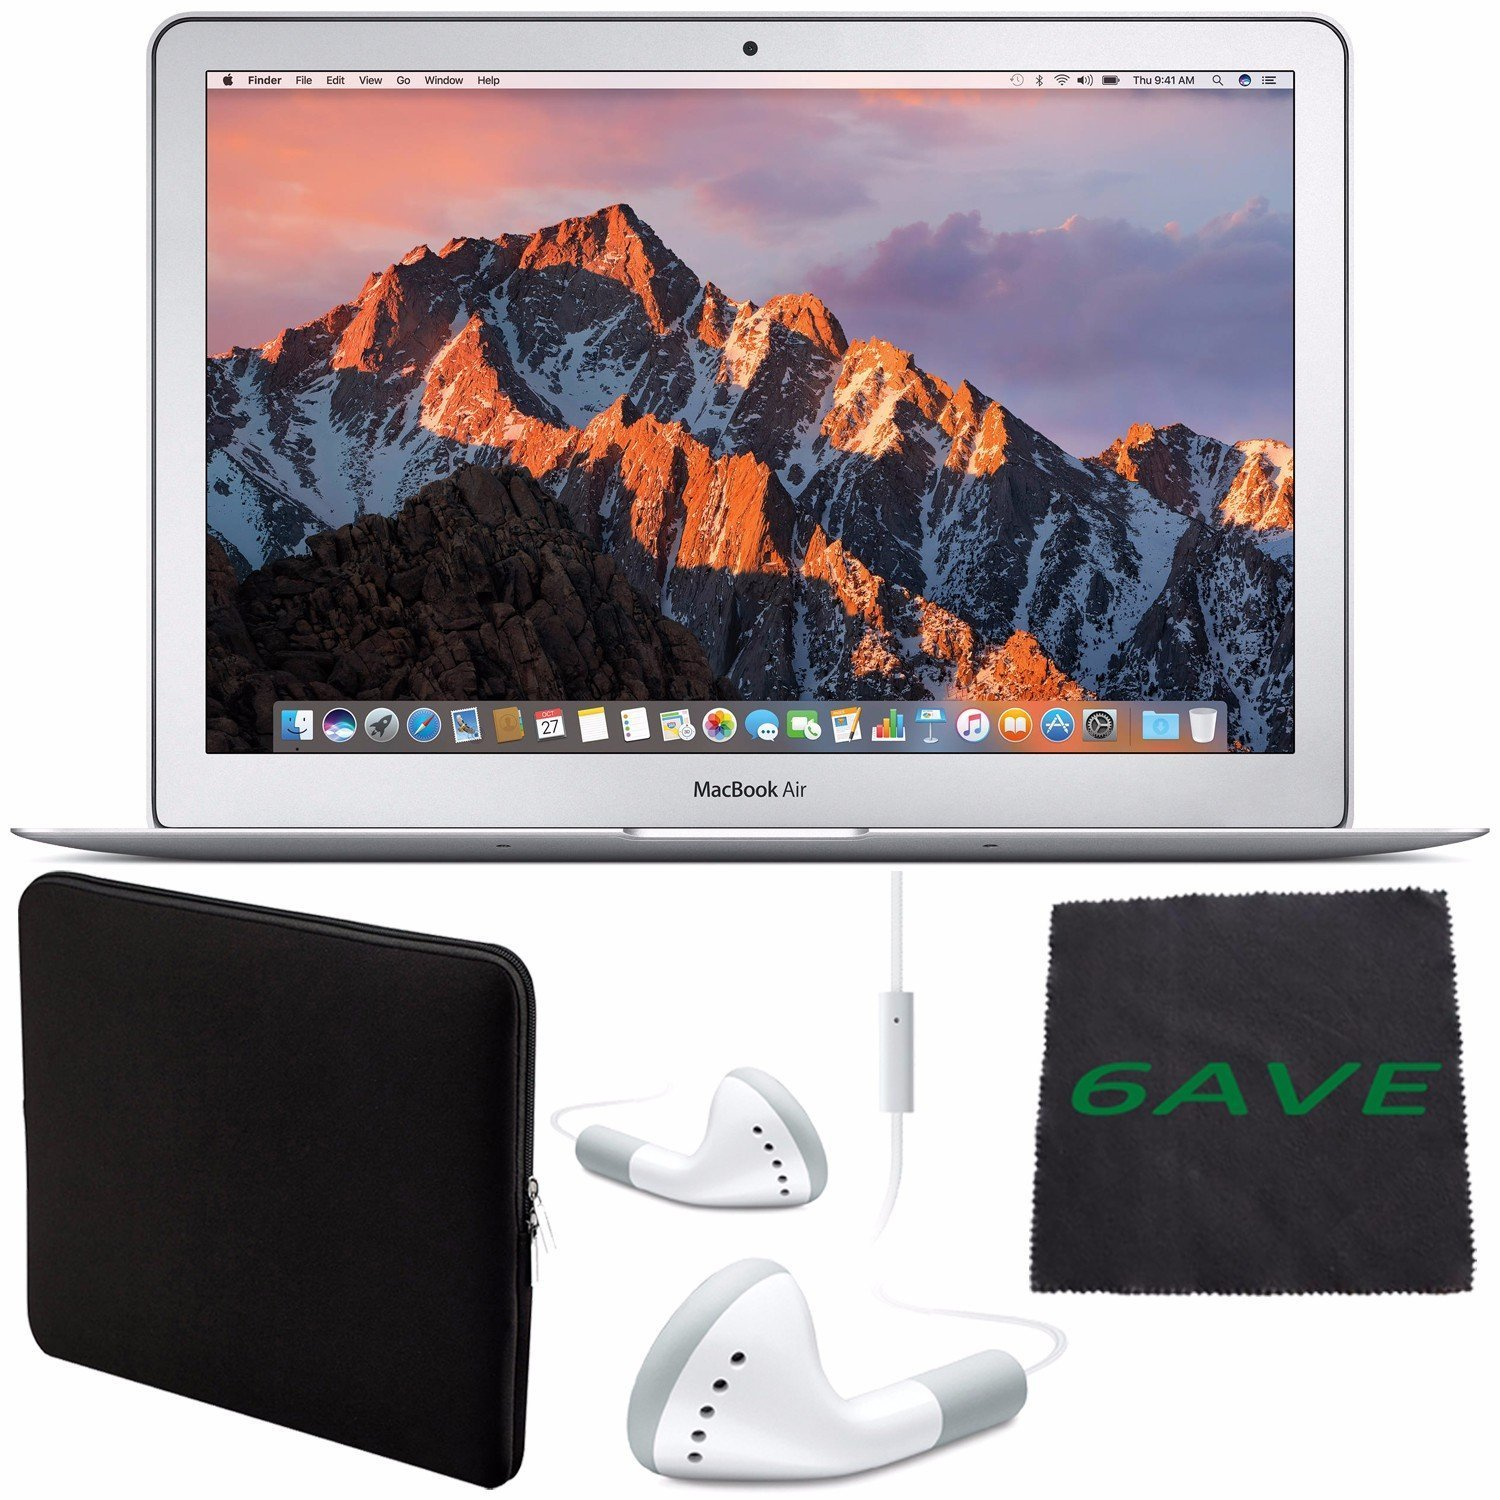 """6Ave Apple 13.3"""" MacBook Air 128GB SSD #MQD32LL/A + White Wired Earbuds Headphones + Padded Case For Macbook + Fibercloth Bundle"""